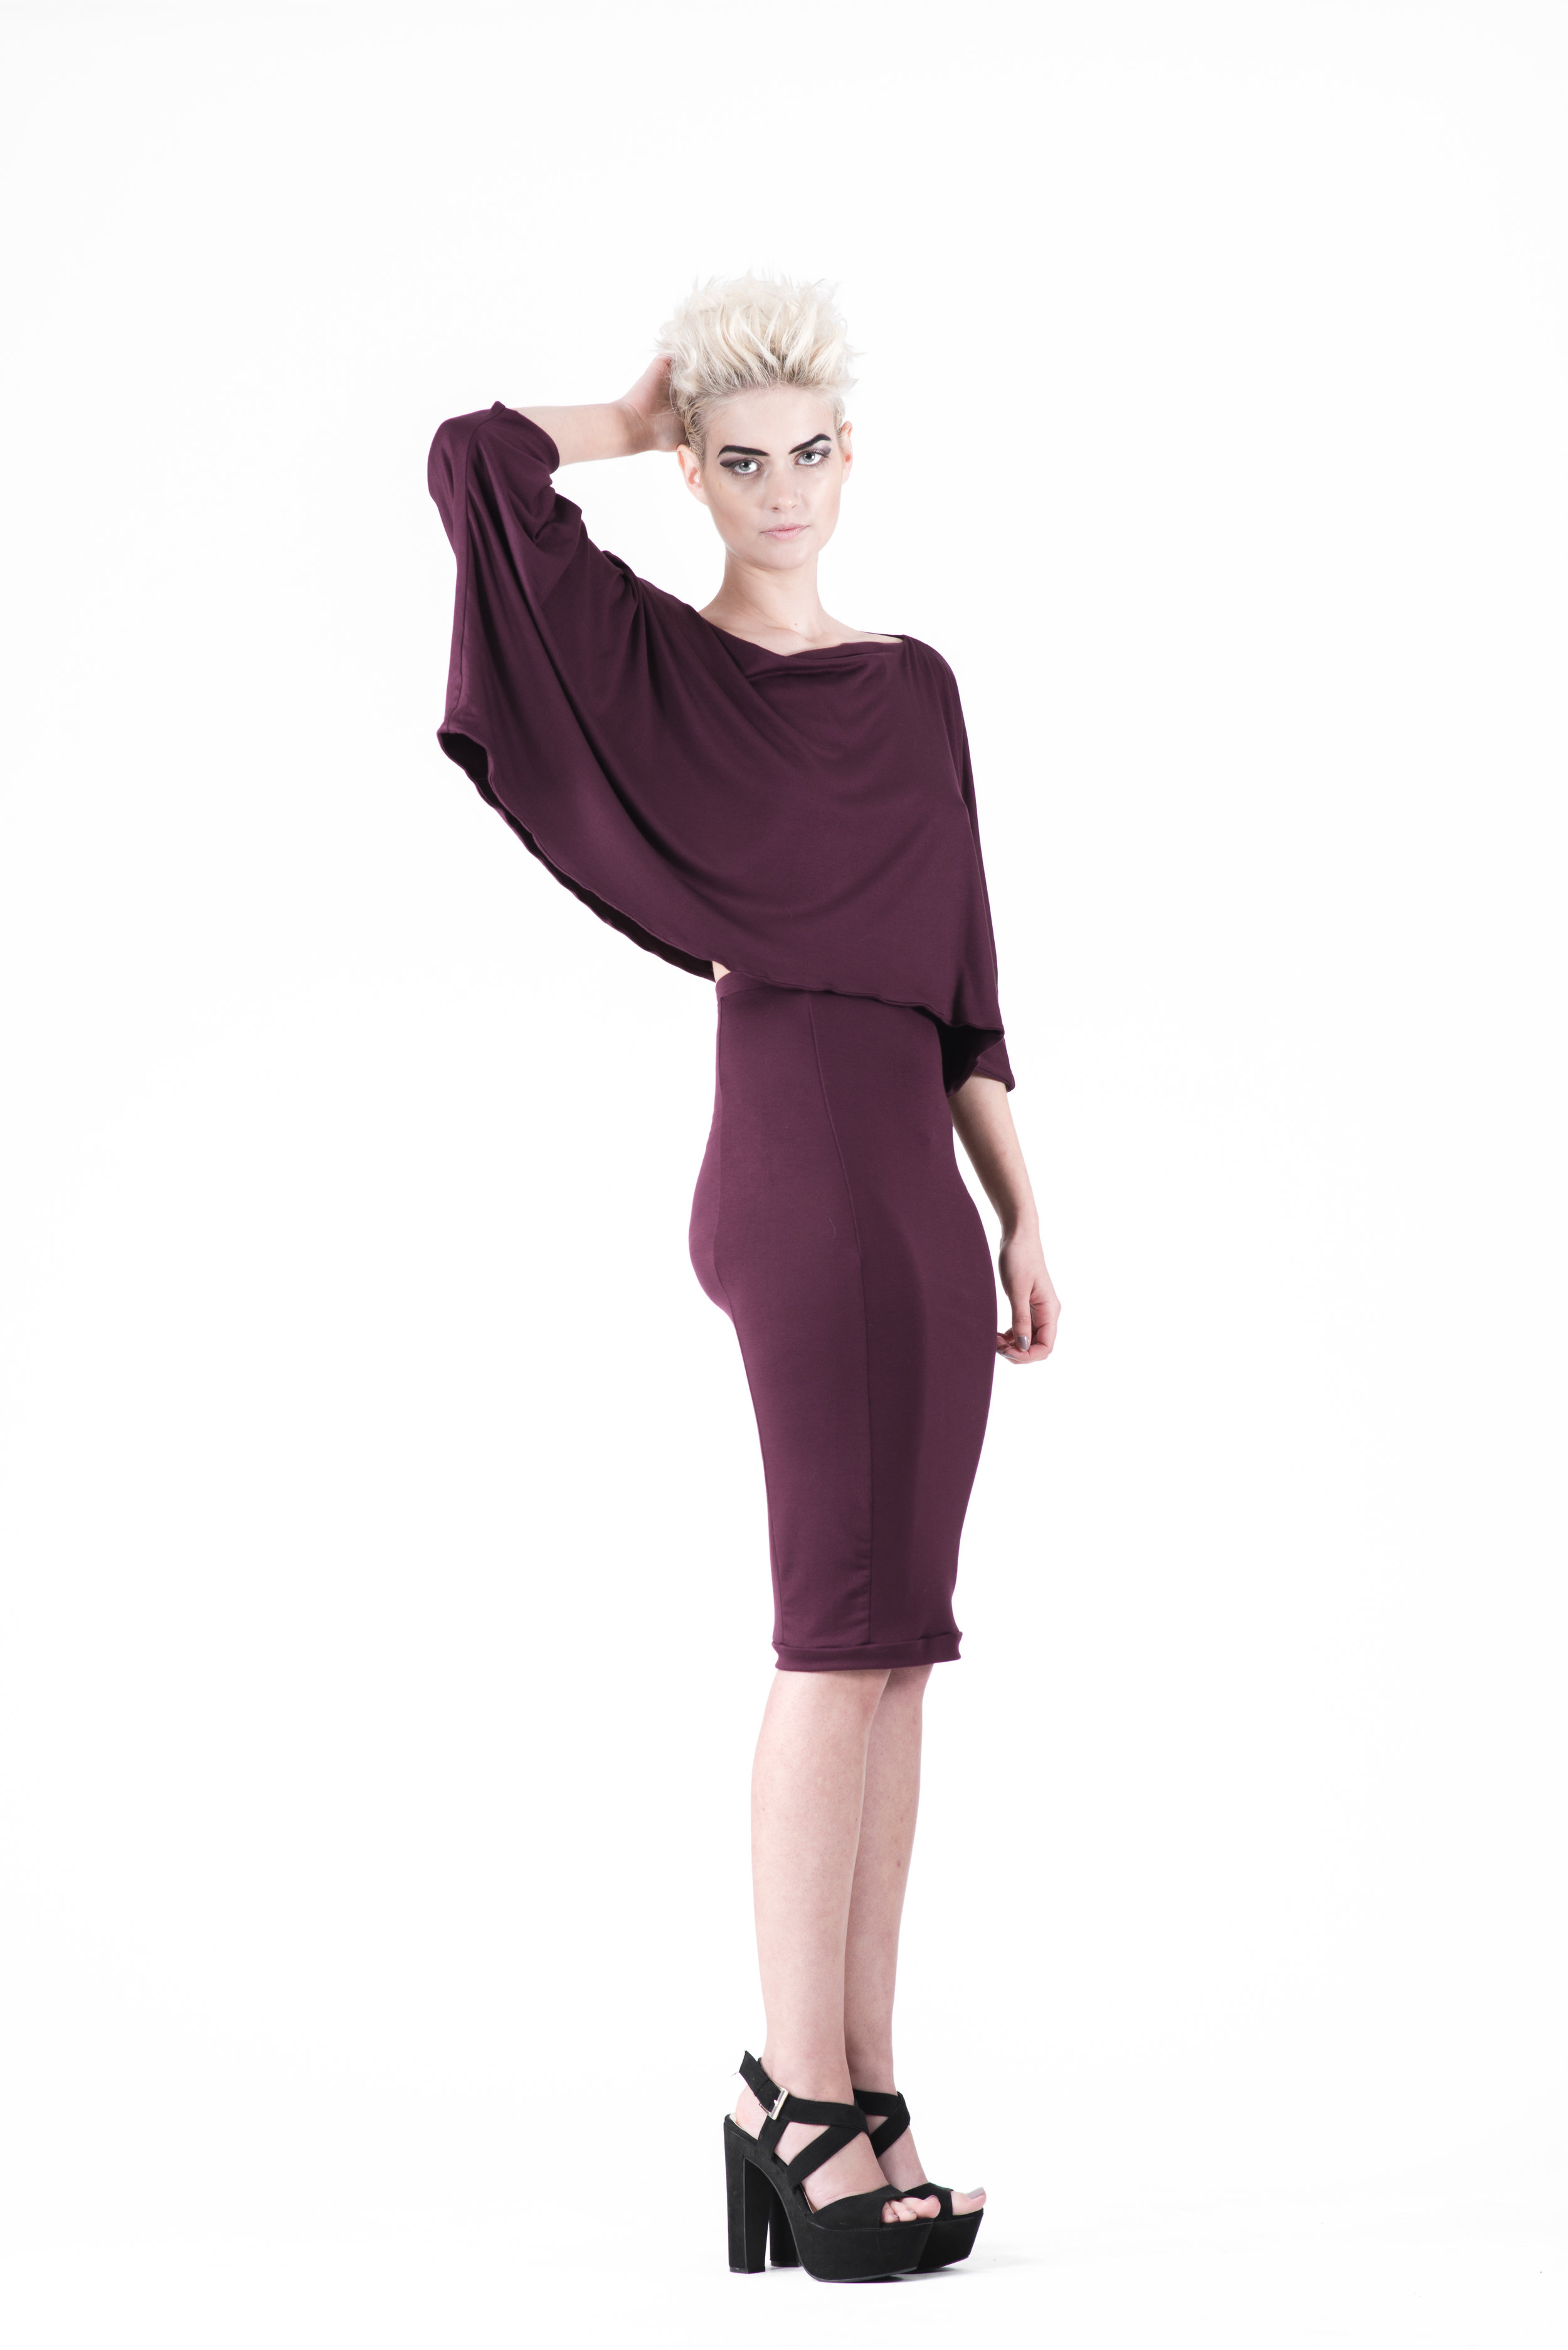 zaramia-ava-zaramiaava-leeds-fashion-designer-ethical-sustainable-tailored-minimalist-mika-plum-top-yuko-plum-versatile-drape-cowl-styling-womenswear-models-photoshoot-18